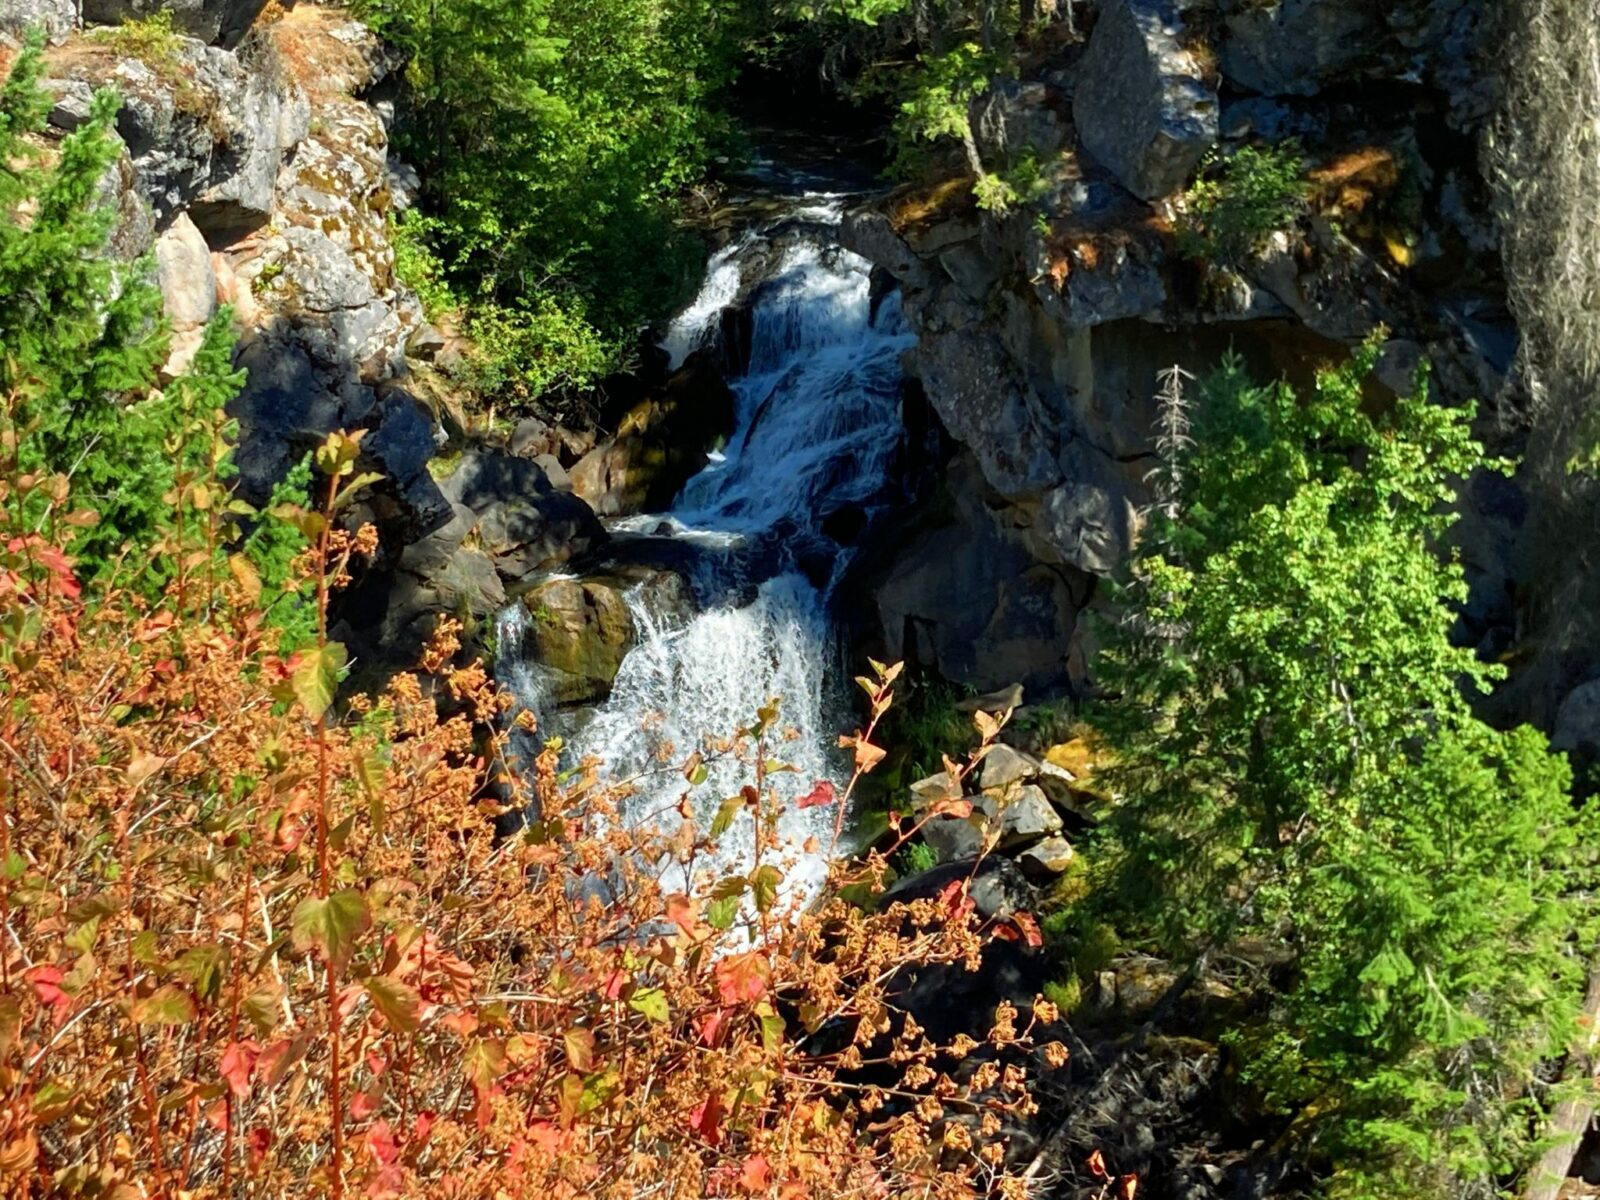 A waterfall tumbles over rocks with some green trees and red and brown bushes surrounding it